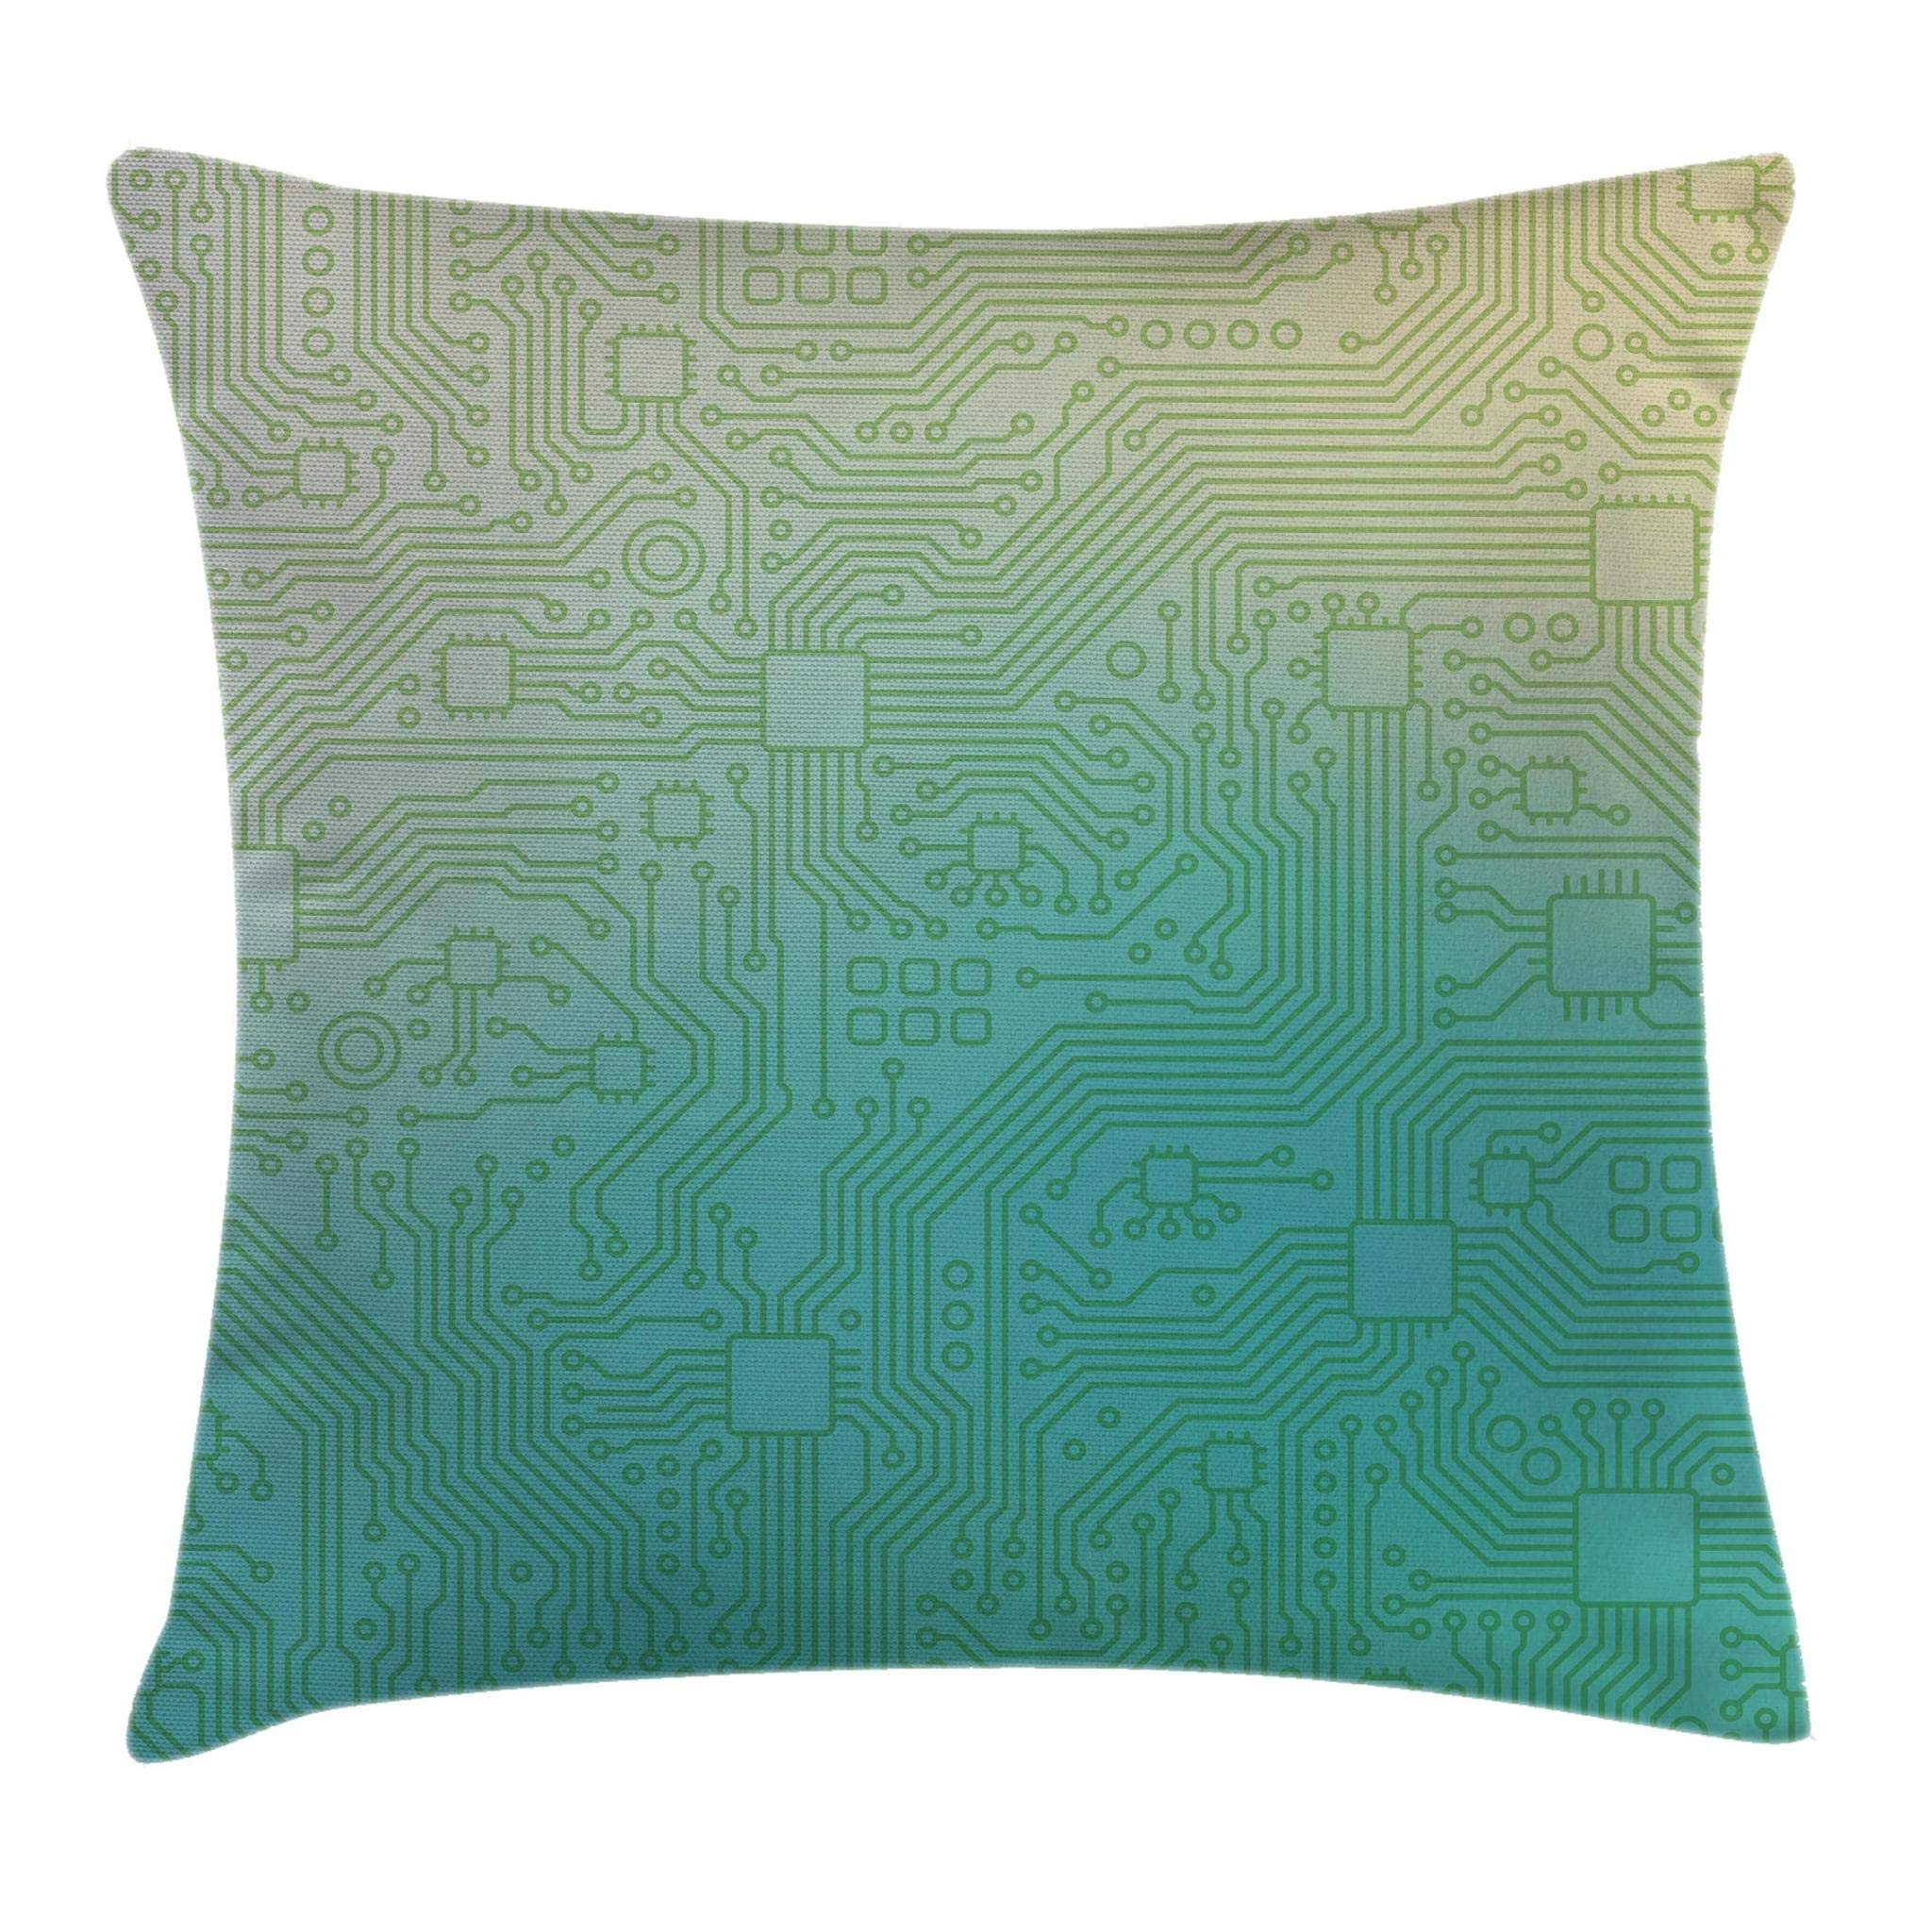 Ambesonne Abstract Decor Throw Pillow Cushion Cover, Technology Pattern Motherboard Image Background Vector Graphics, Decorative Square Accent Pillow Case, 16 X 16 Inches, Jade Green Pale Green